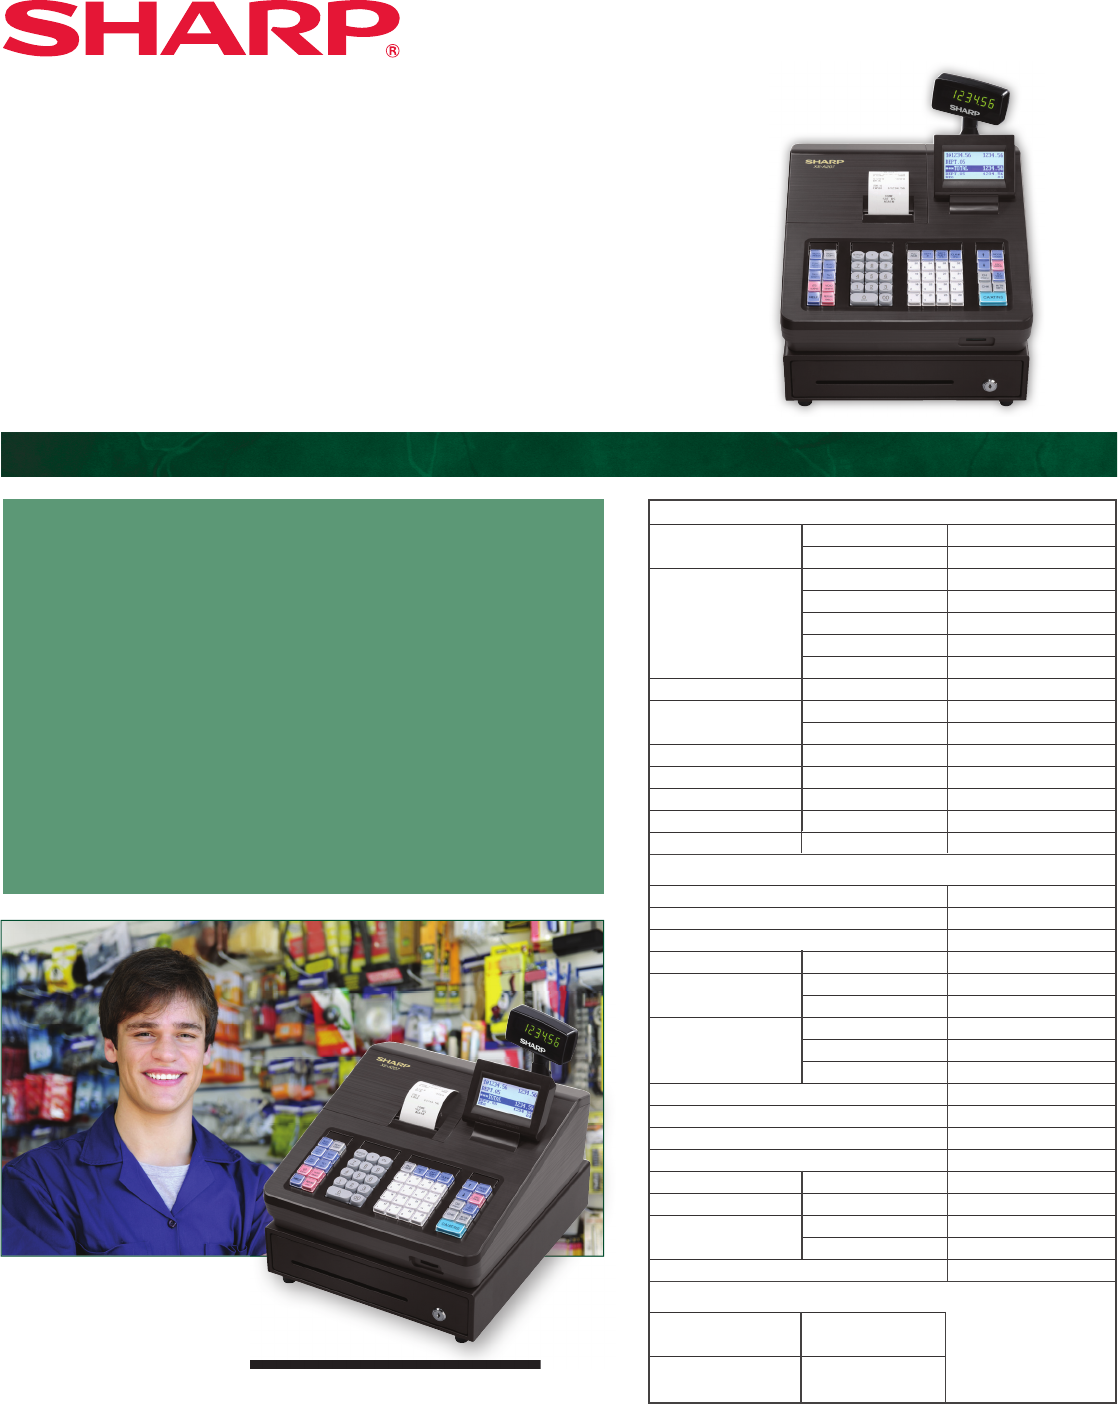 The XE-A207 cash register with its unique menu-based control system is the  ideal